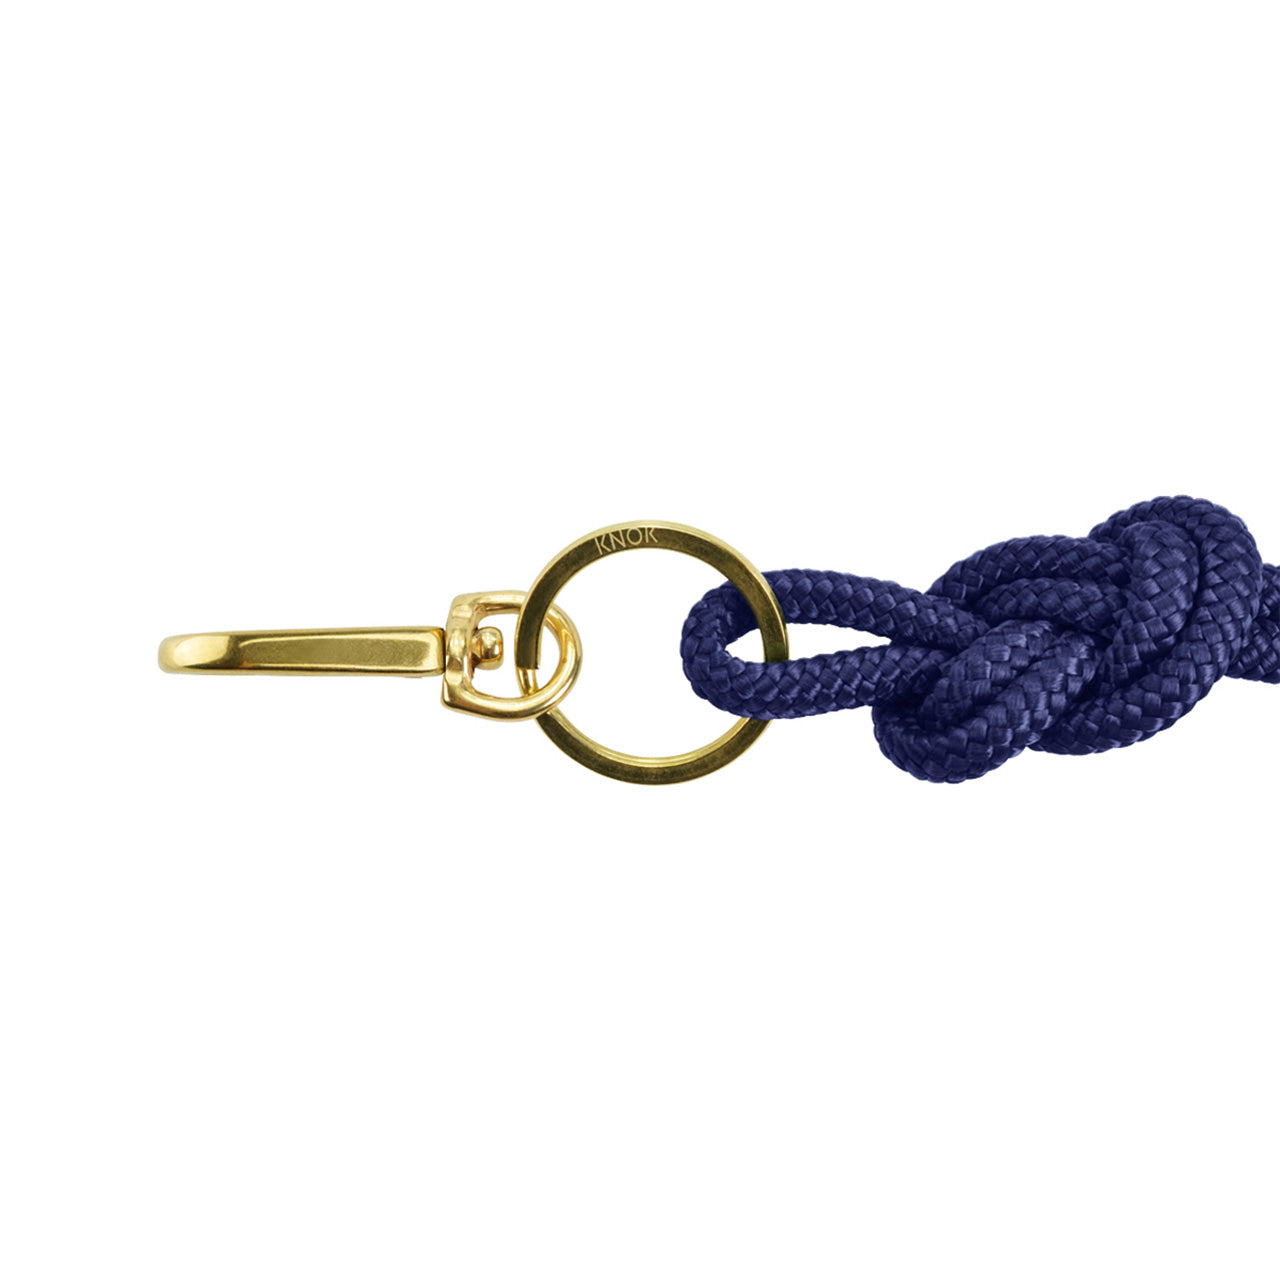 KNOK-KEY-KNOT-Navy